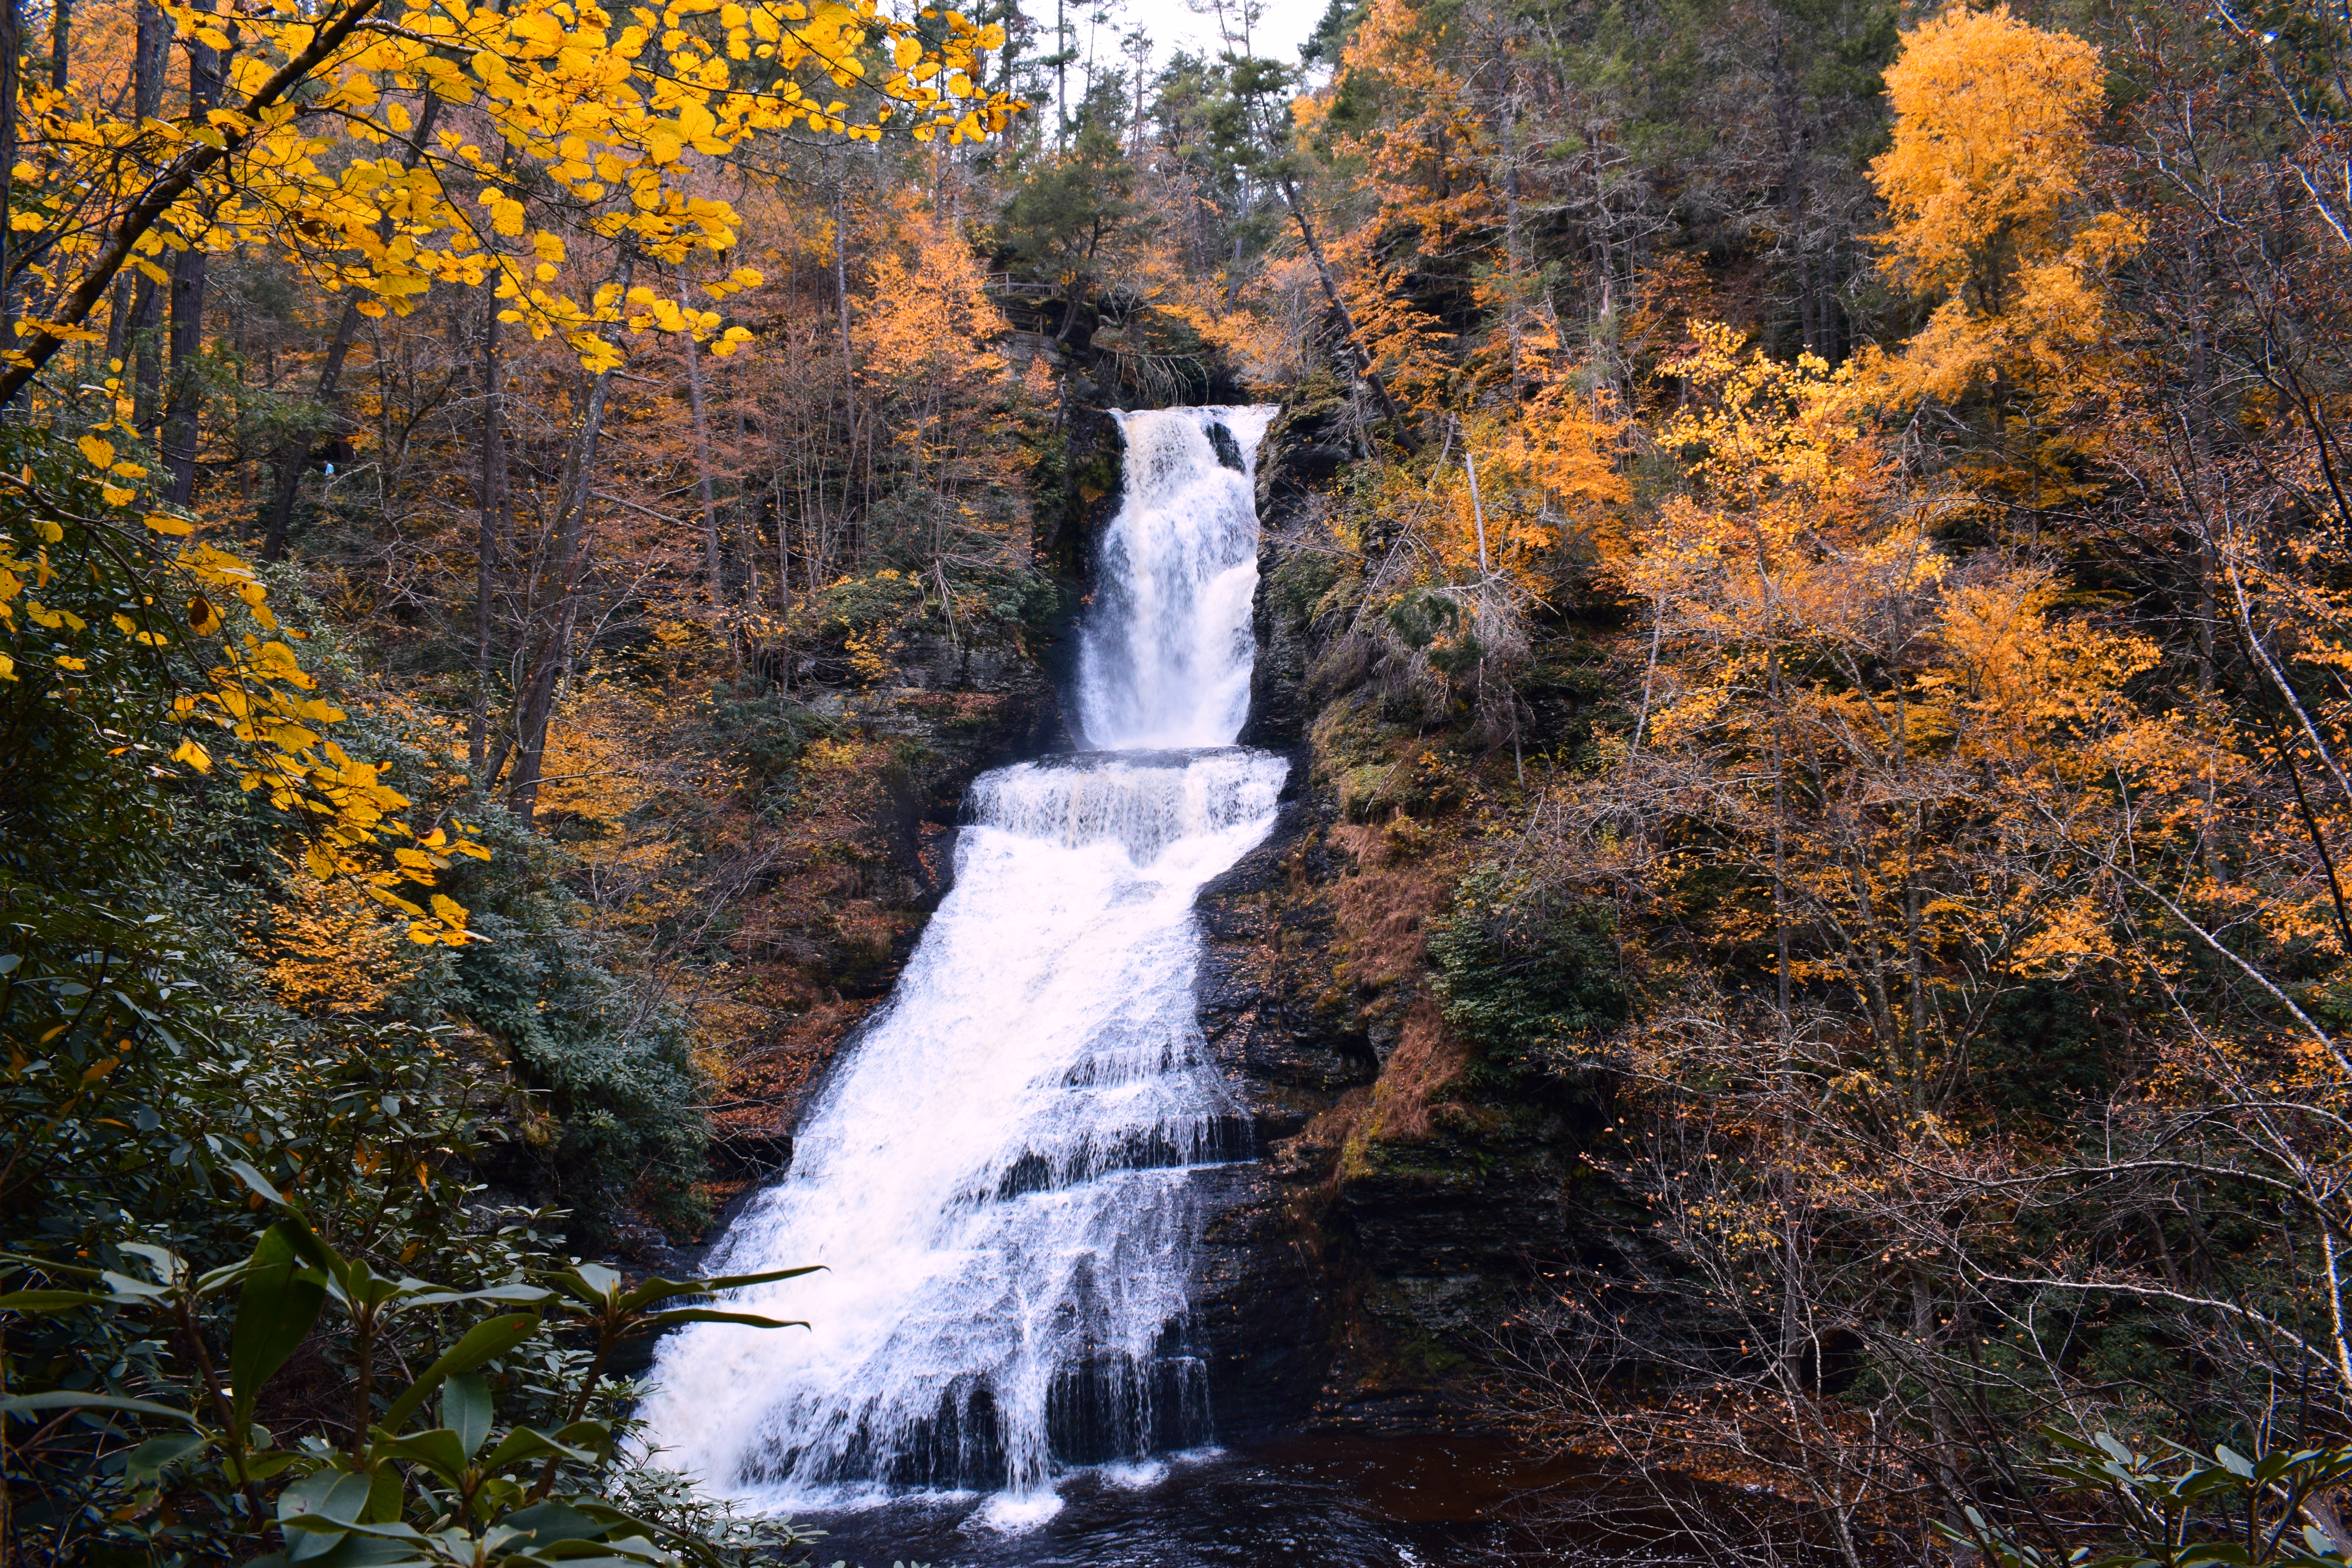 Poconos Fall Foliage Forecast | When to See the Autumn Colors